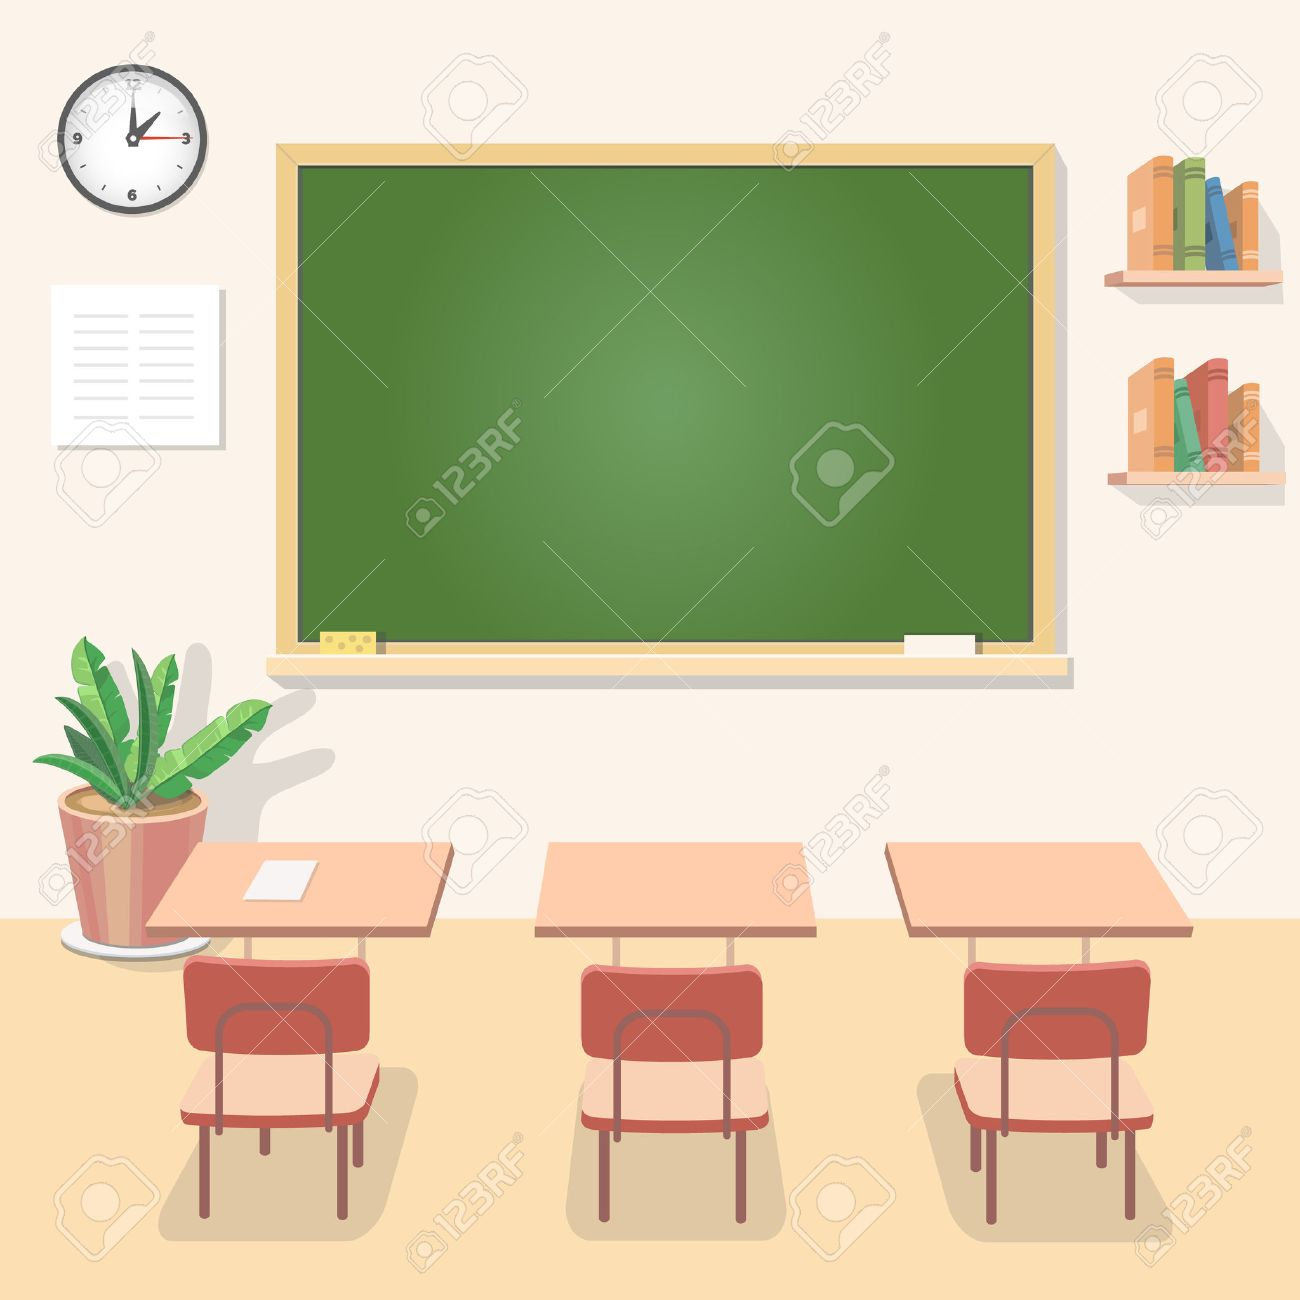 classroom table vector. school classroom with chalkboard and desks. class for education, board, table study vector